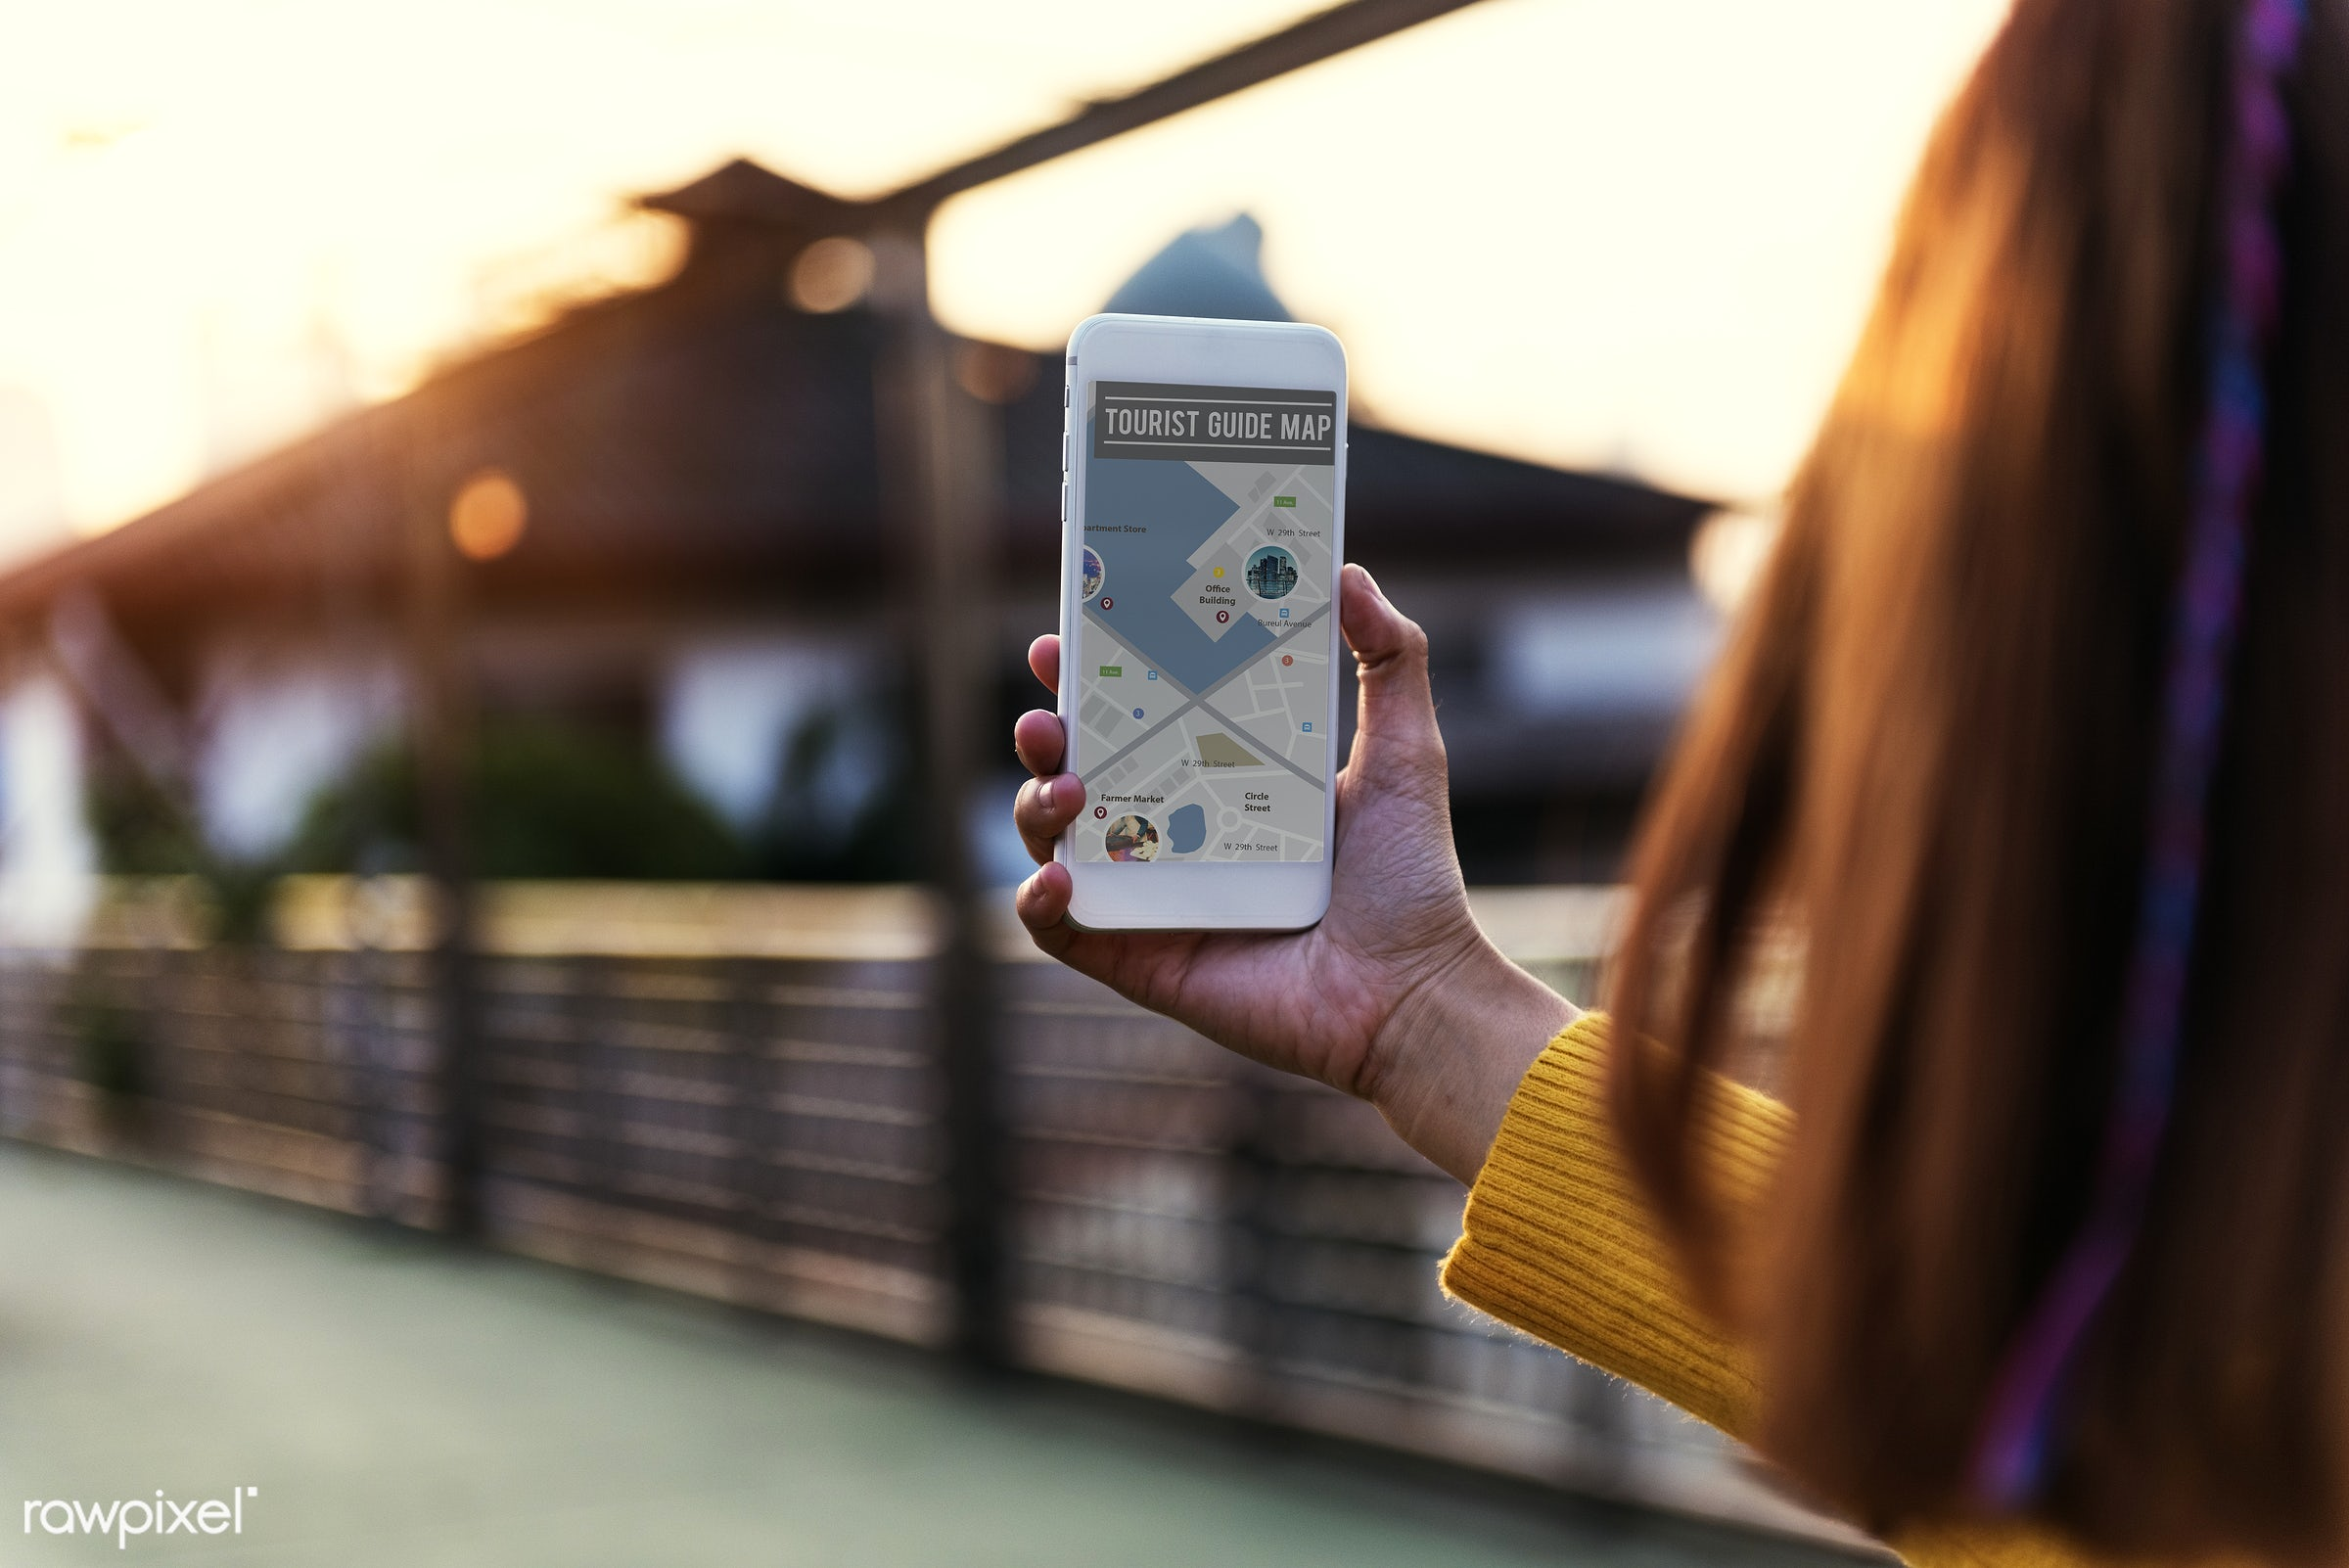 holding, map, travel, location, guide, mobile, phone, smartphone, wireless, technology, digital, navigation, direction,...